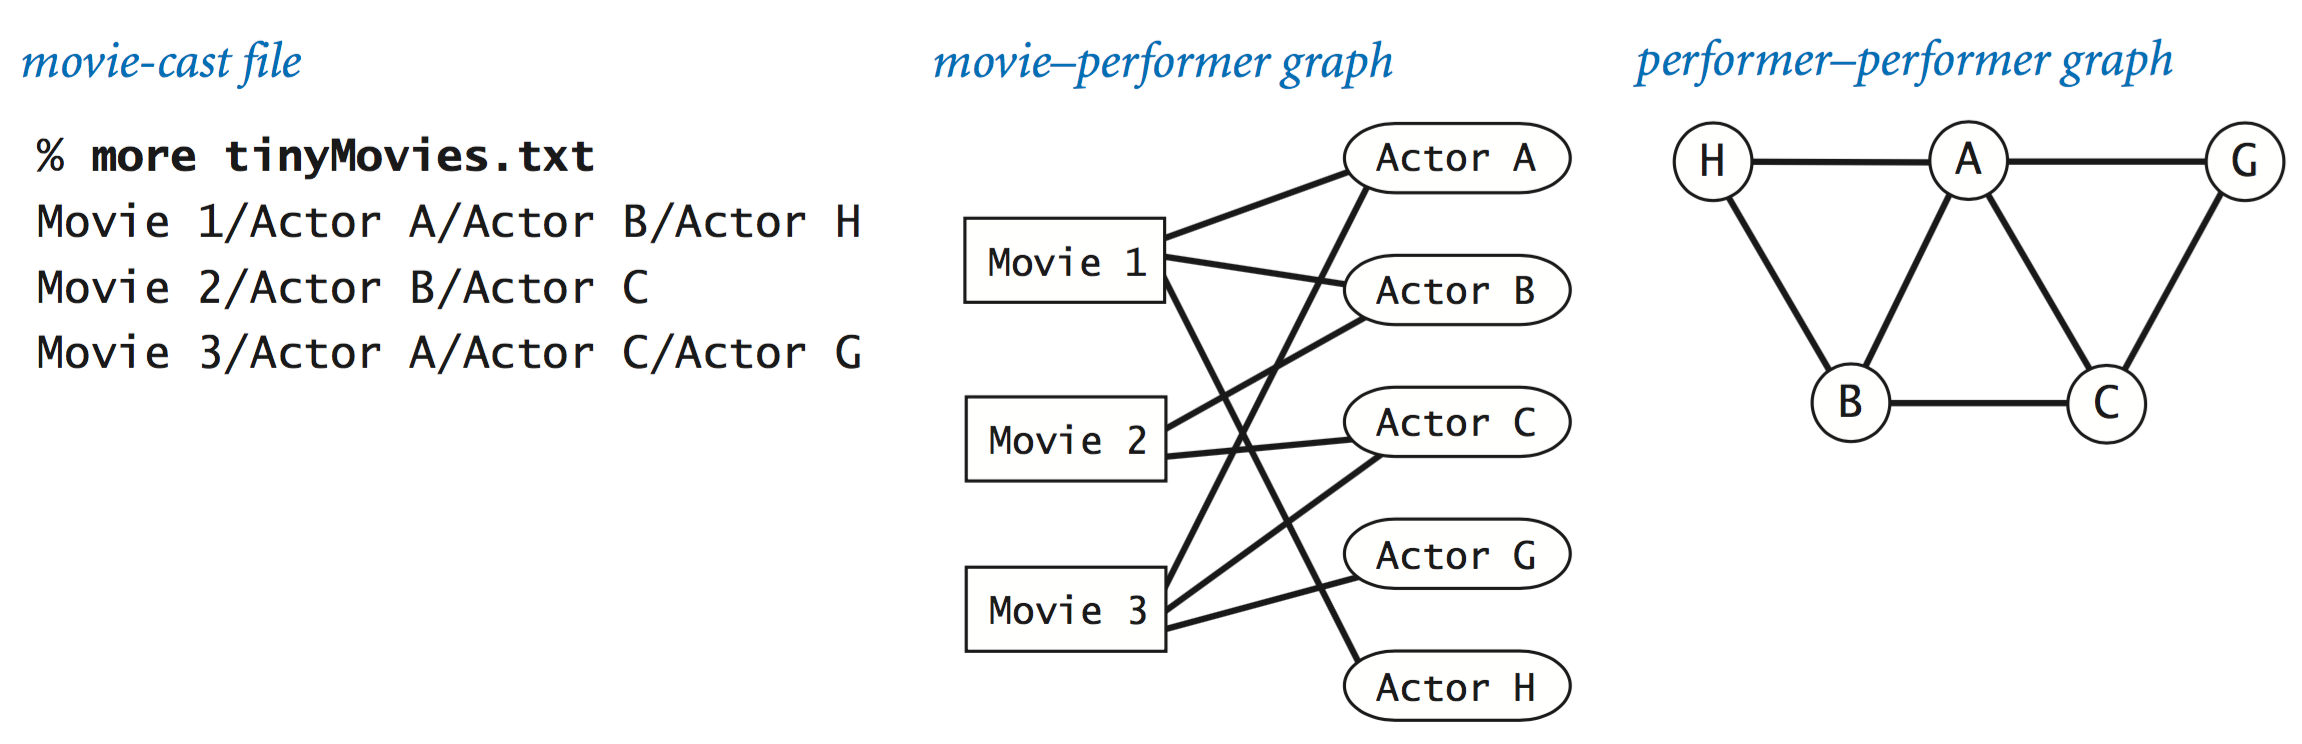 Two Different Graph Representations Of A Movie Cast File